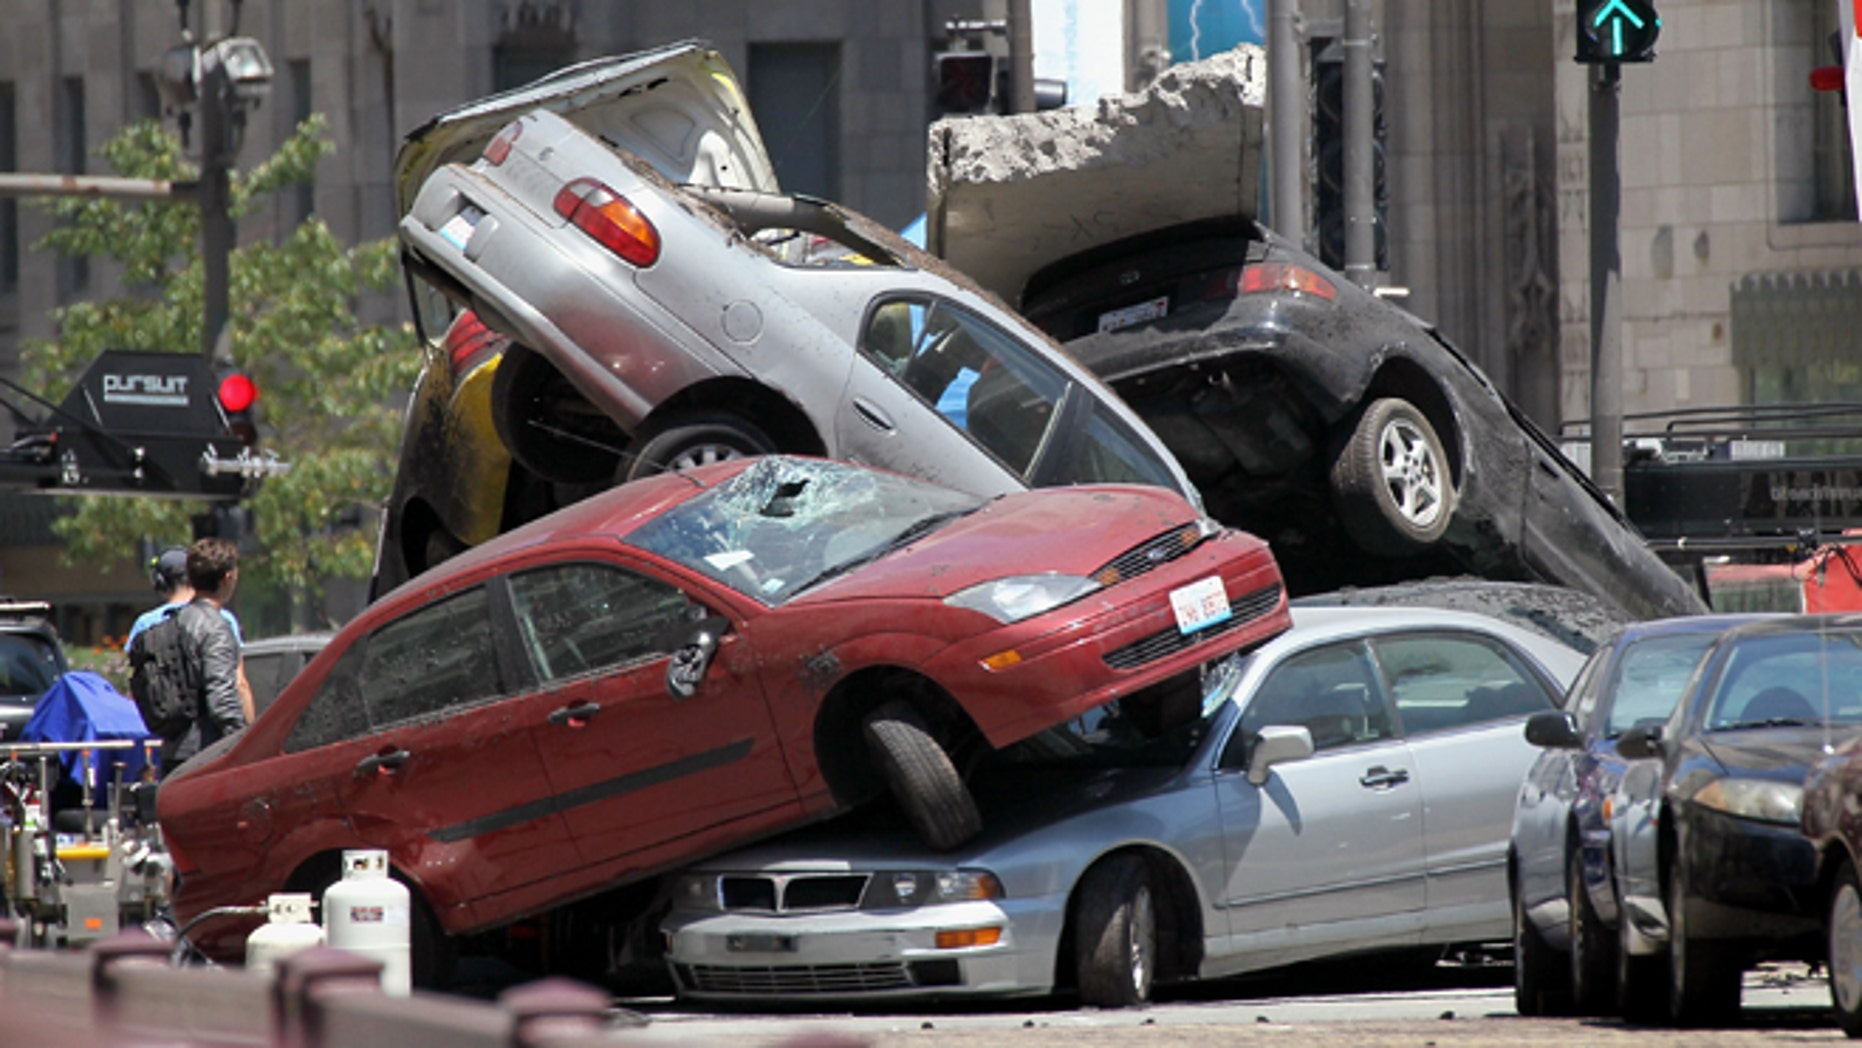 """Workers stage a car accident during the filming of the movie """"Transformers 3"""" in Chicago, Illinois."""